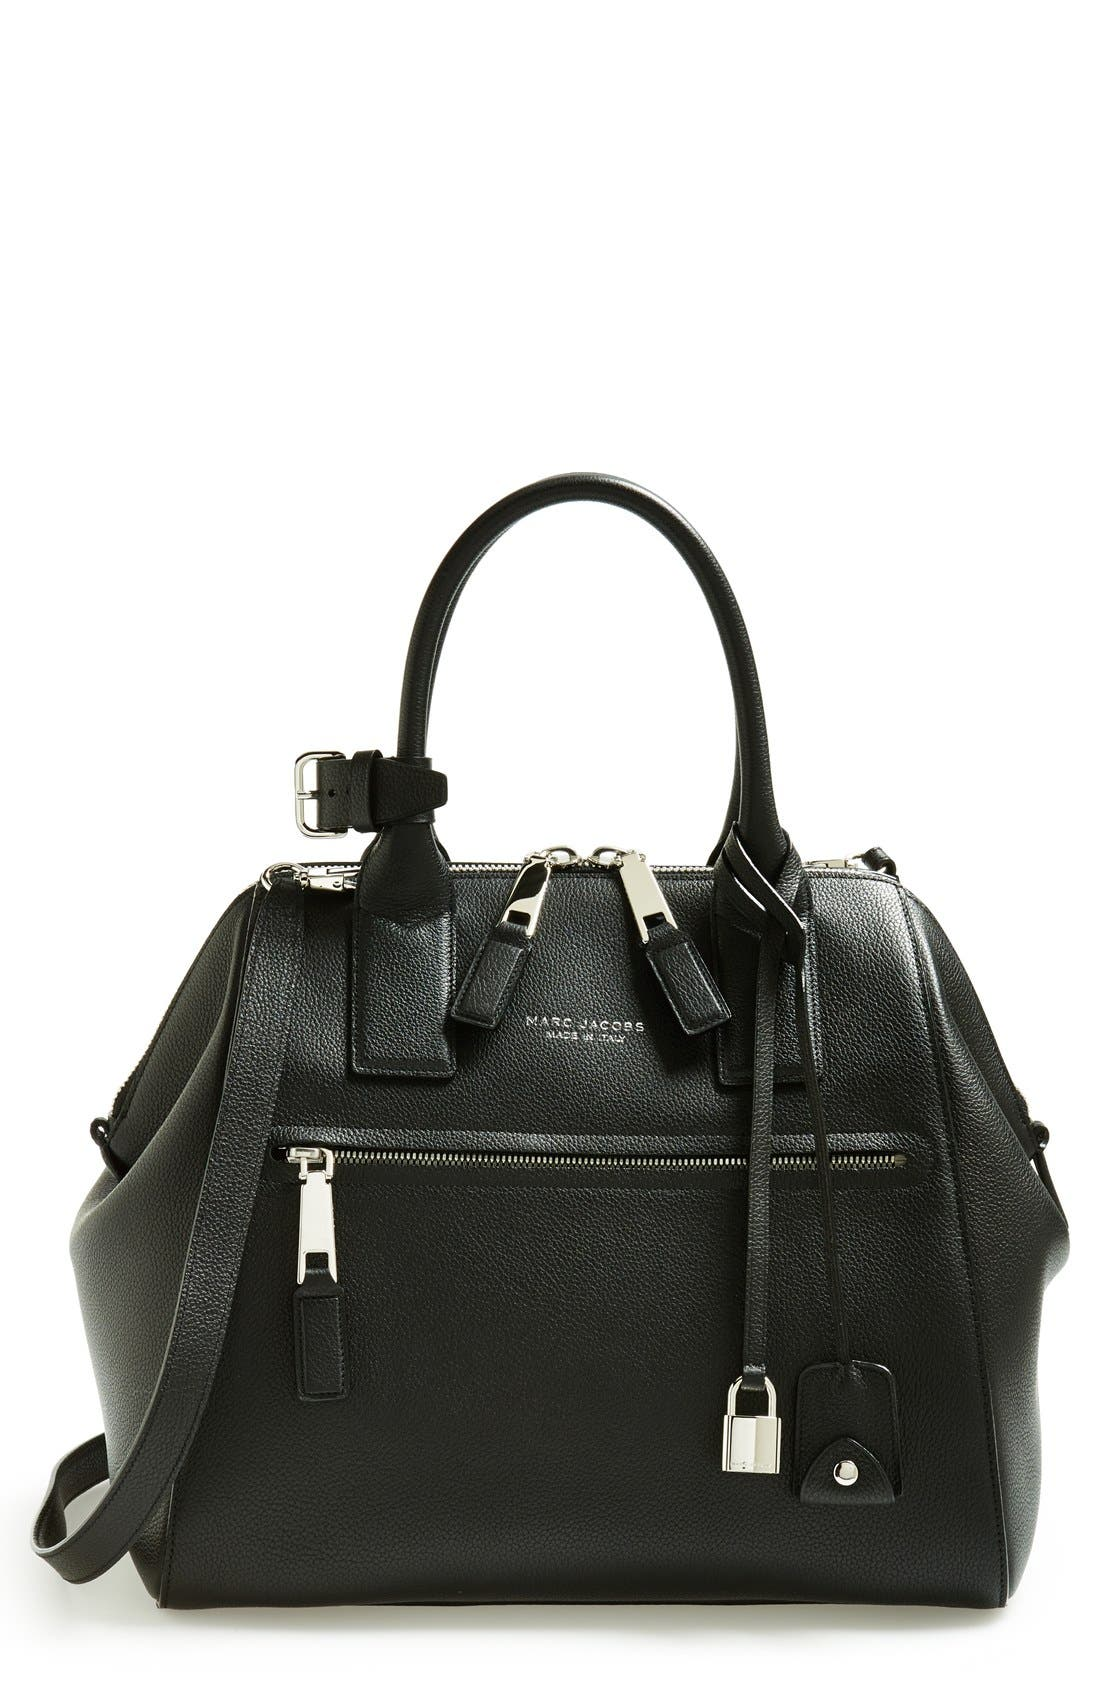 Alternate Image 1 Selected - MARC JACOBS 'Large Incognito' Leather Satchel